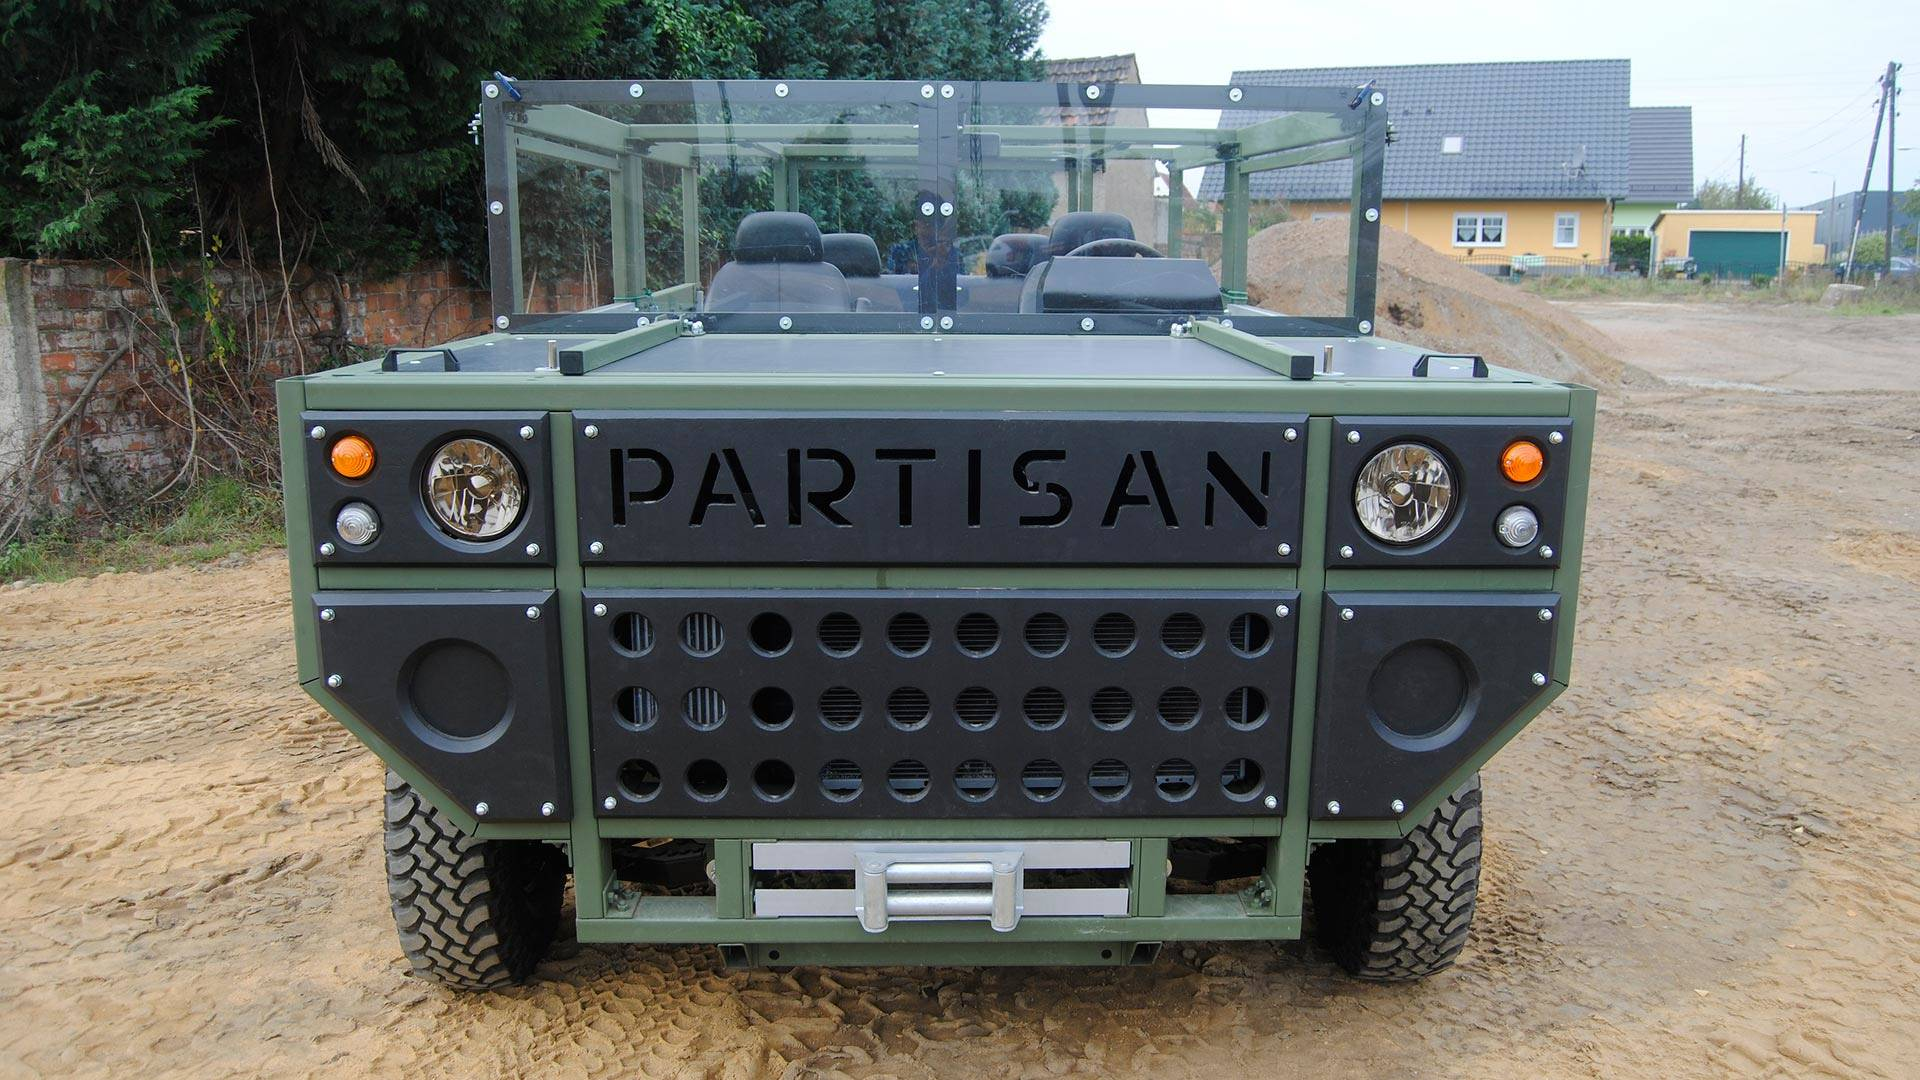 Partisan e Military SUV Puts Simplicity Looking Good